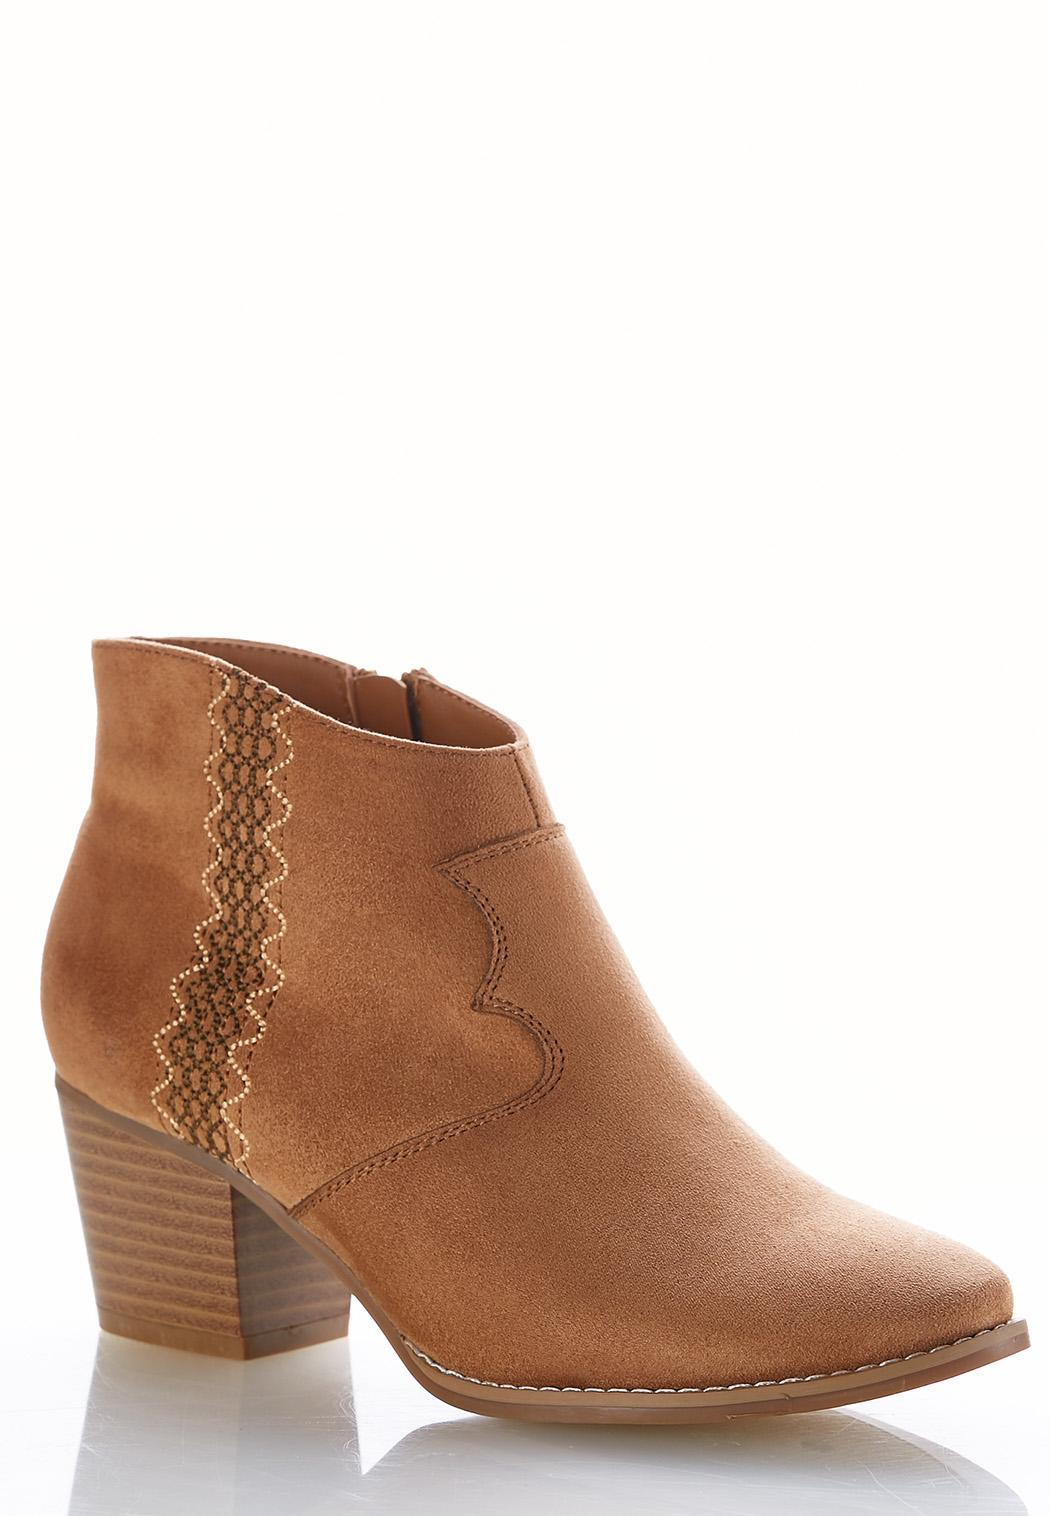 Embroidered Western Ankle Boots Shooties Cato Fashions Detail Alternate View